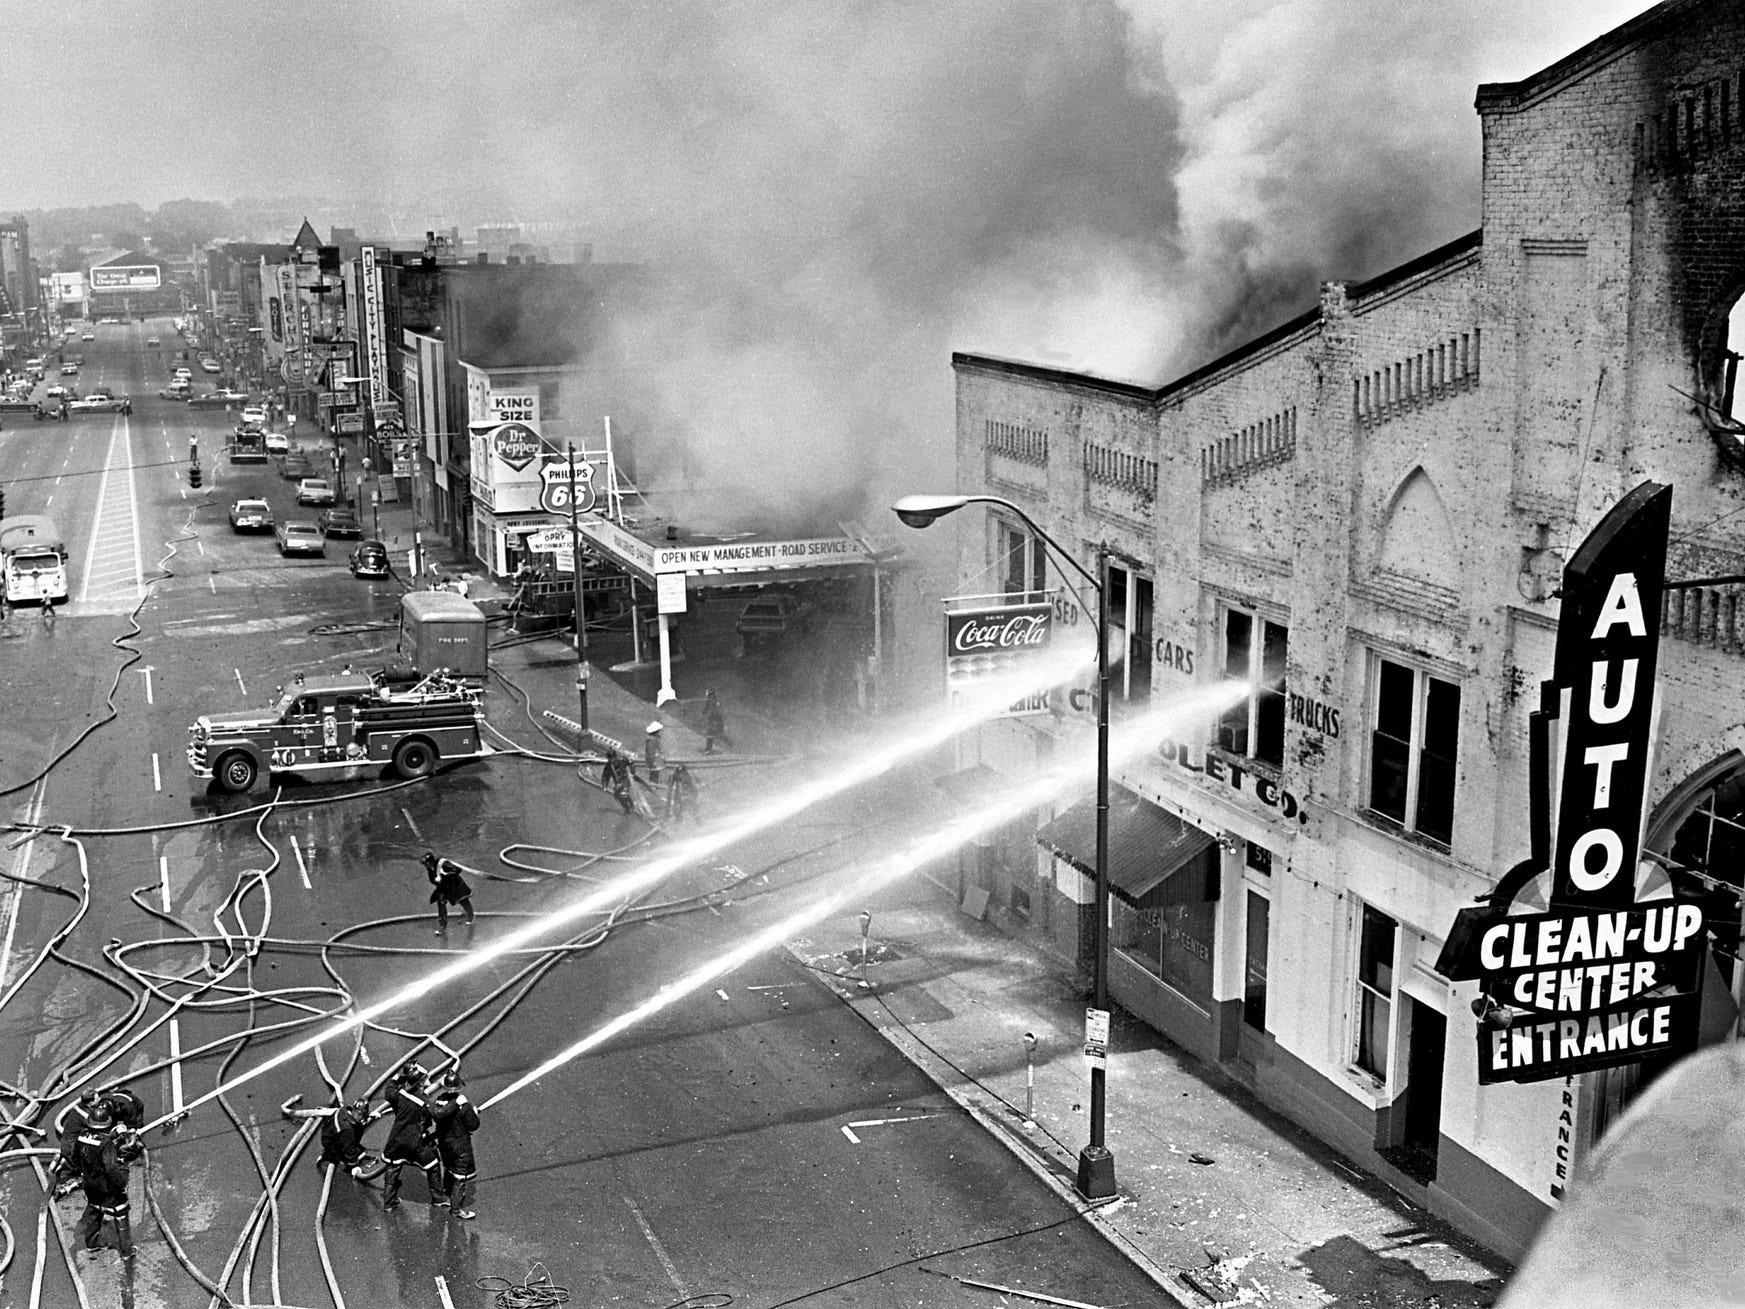 Metro firefighters battle the blaze destroying the Auto Clean-Up Center at 519 Broadway on June 1, 1968. The building used to be used by the Capitol Chevrolet Co. for its truck and used car departments for many years. The dealerships moved to 600 Murfreesboro Road about a month ago.